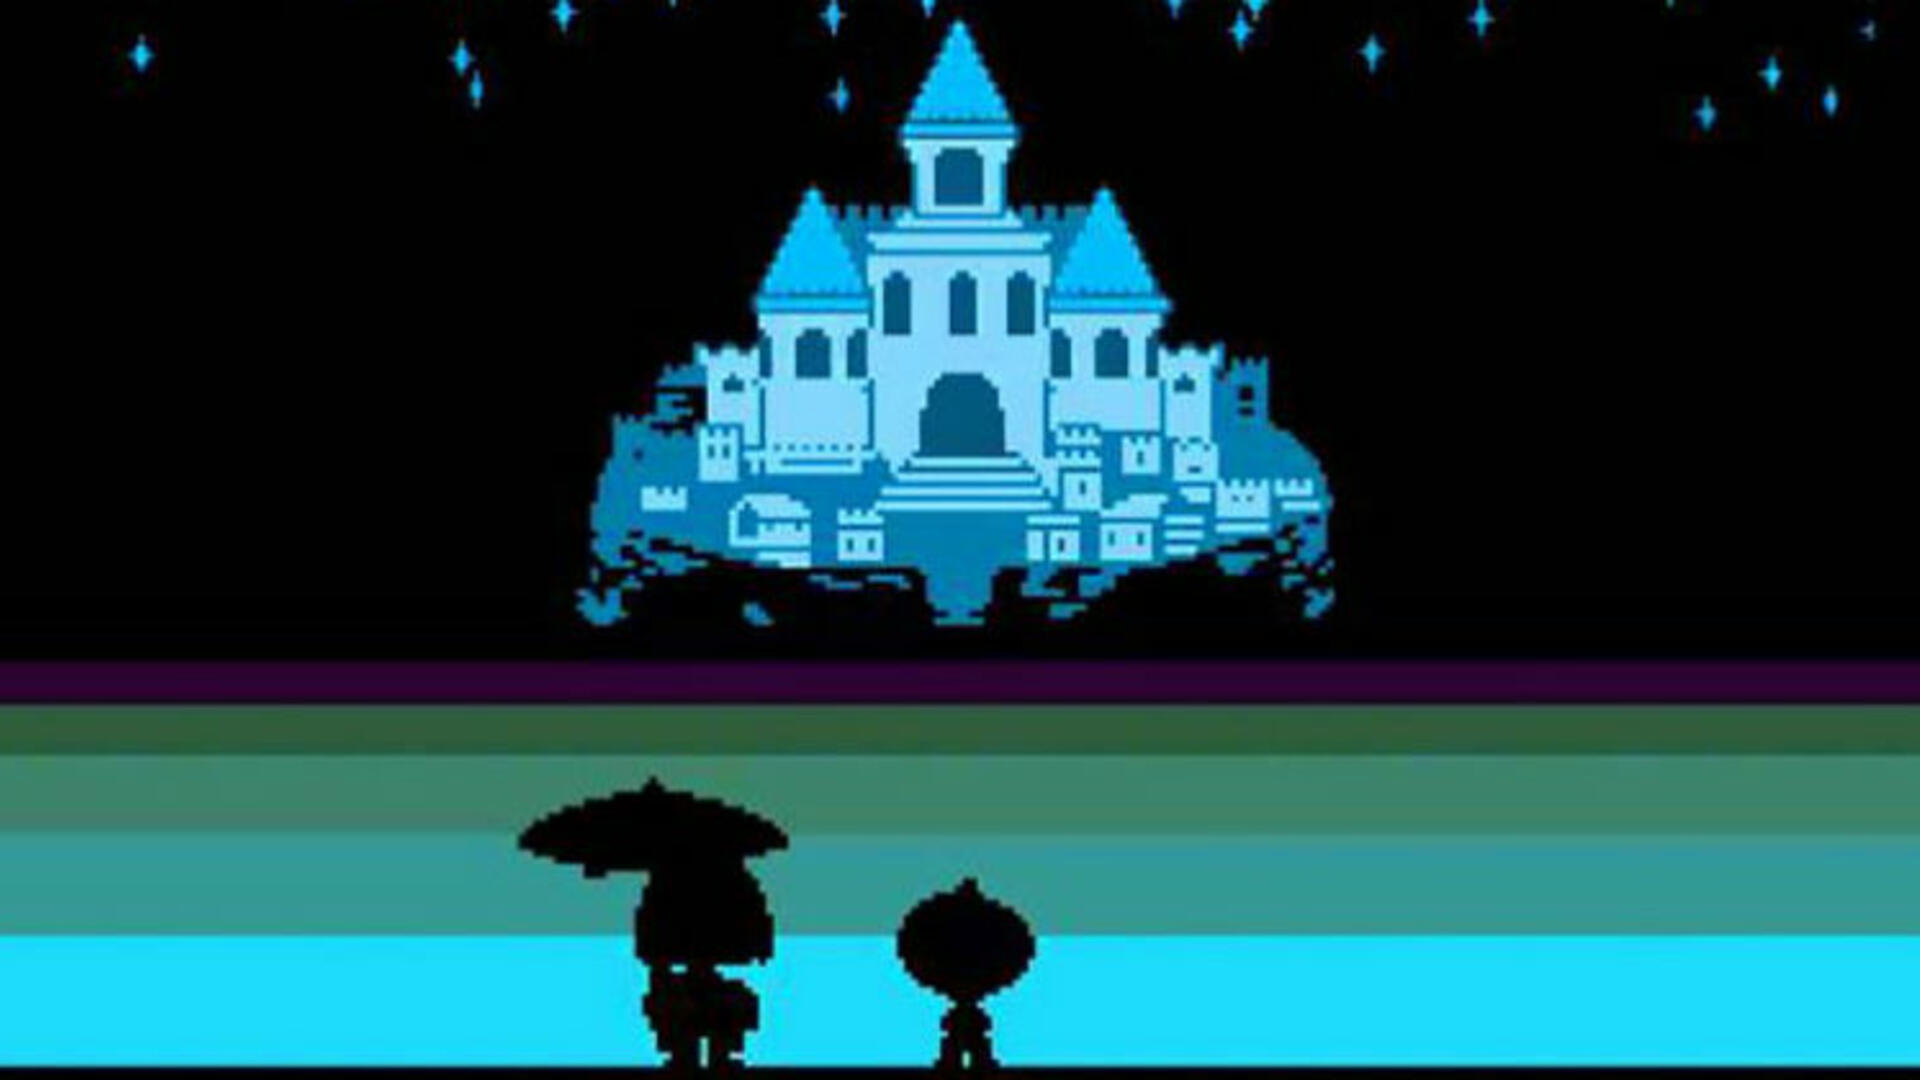 Undertale Might Come to the Wii U -- But How Would That Work?